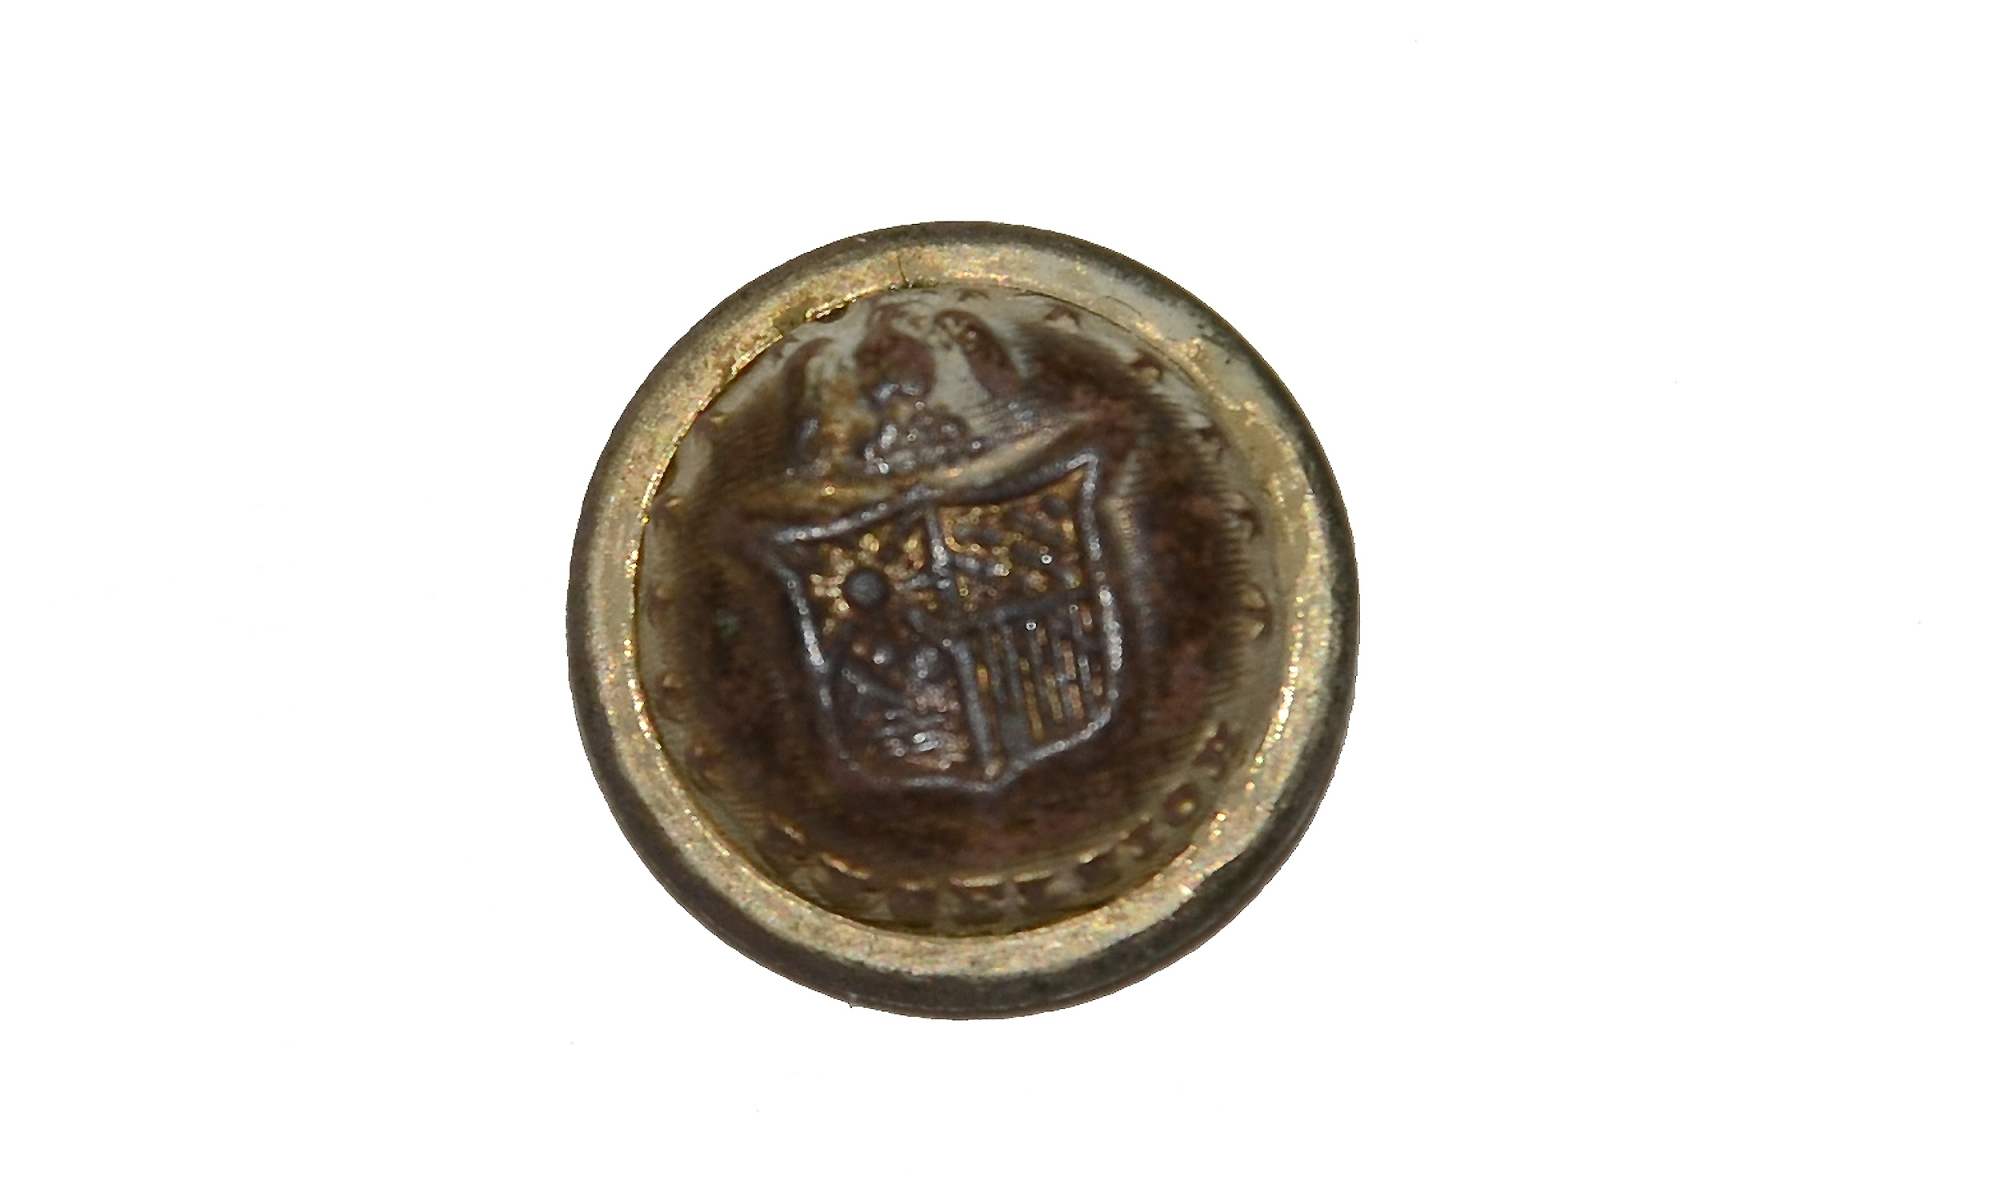 NEW YORK BUTTON RECOVERED AT ROSE WOODS, GETTYSBURG